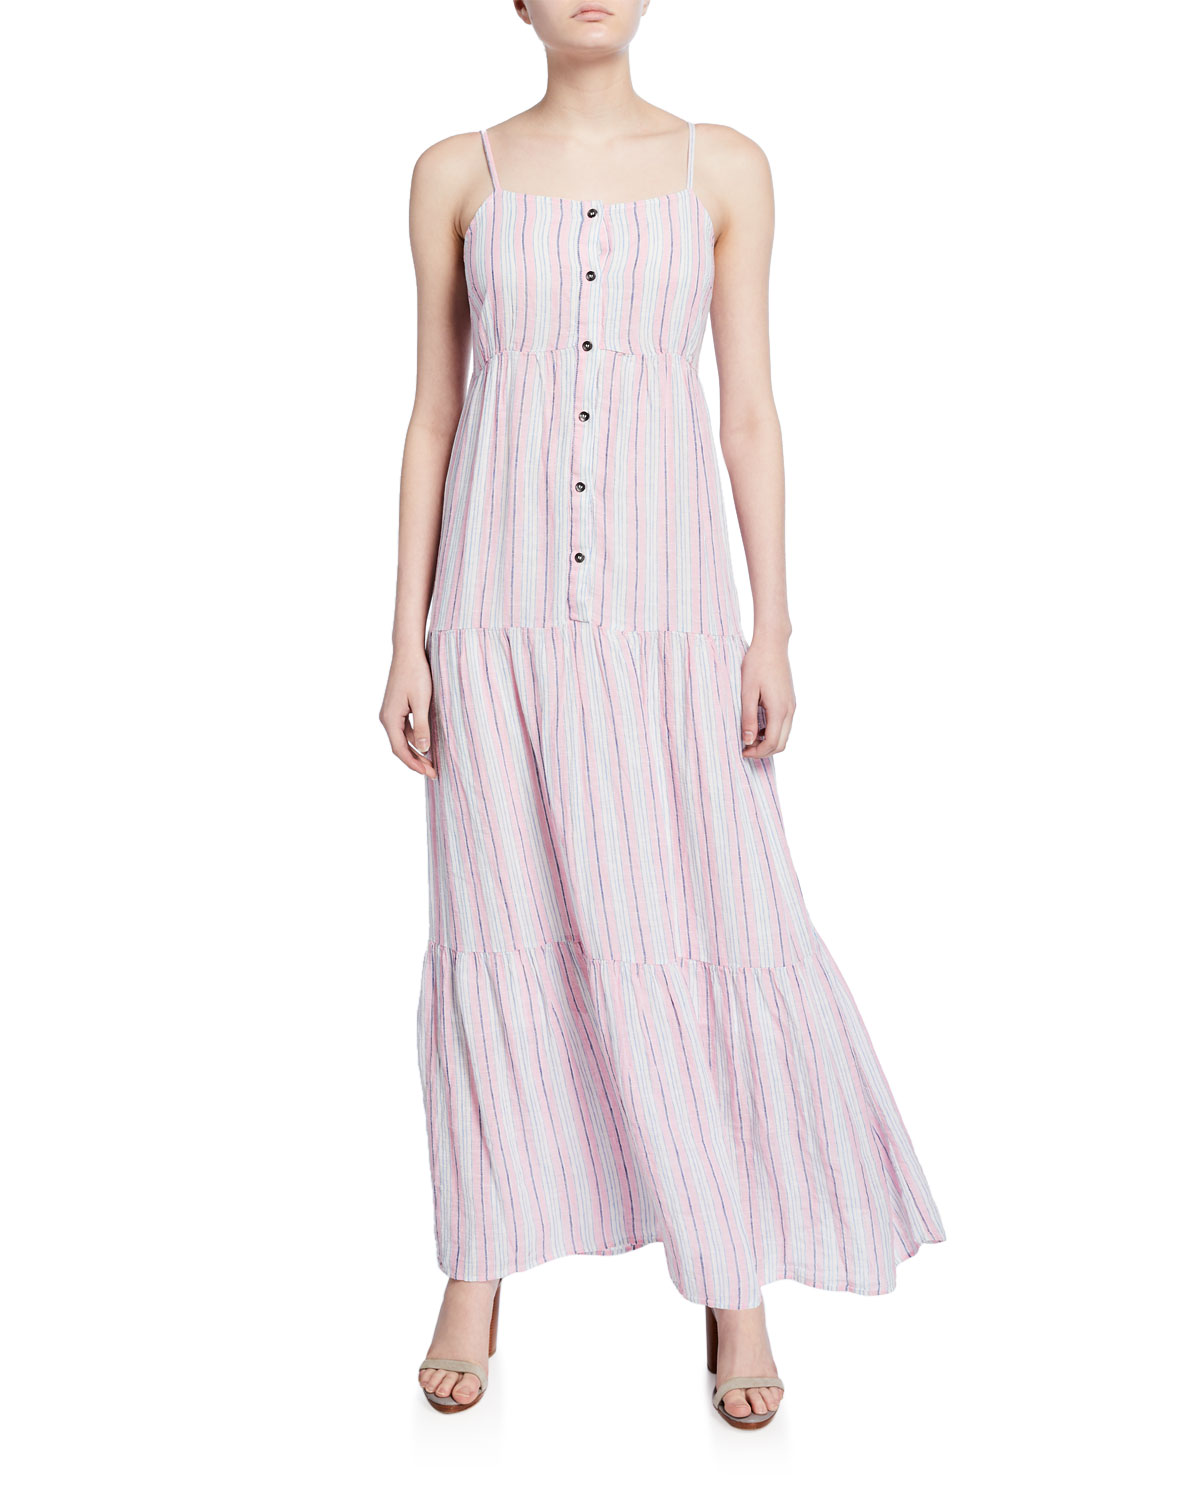 Splendid Dresses PROMENADE STRIPED BUTTON-FRONT TIERED MAXI DRESS